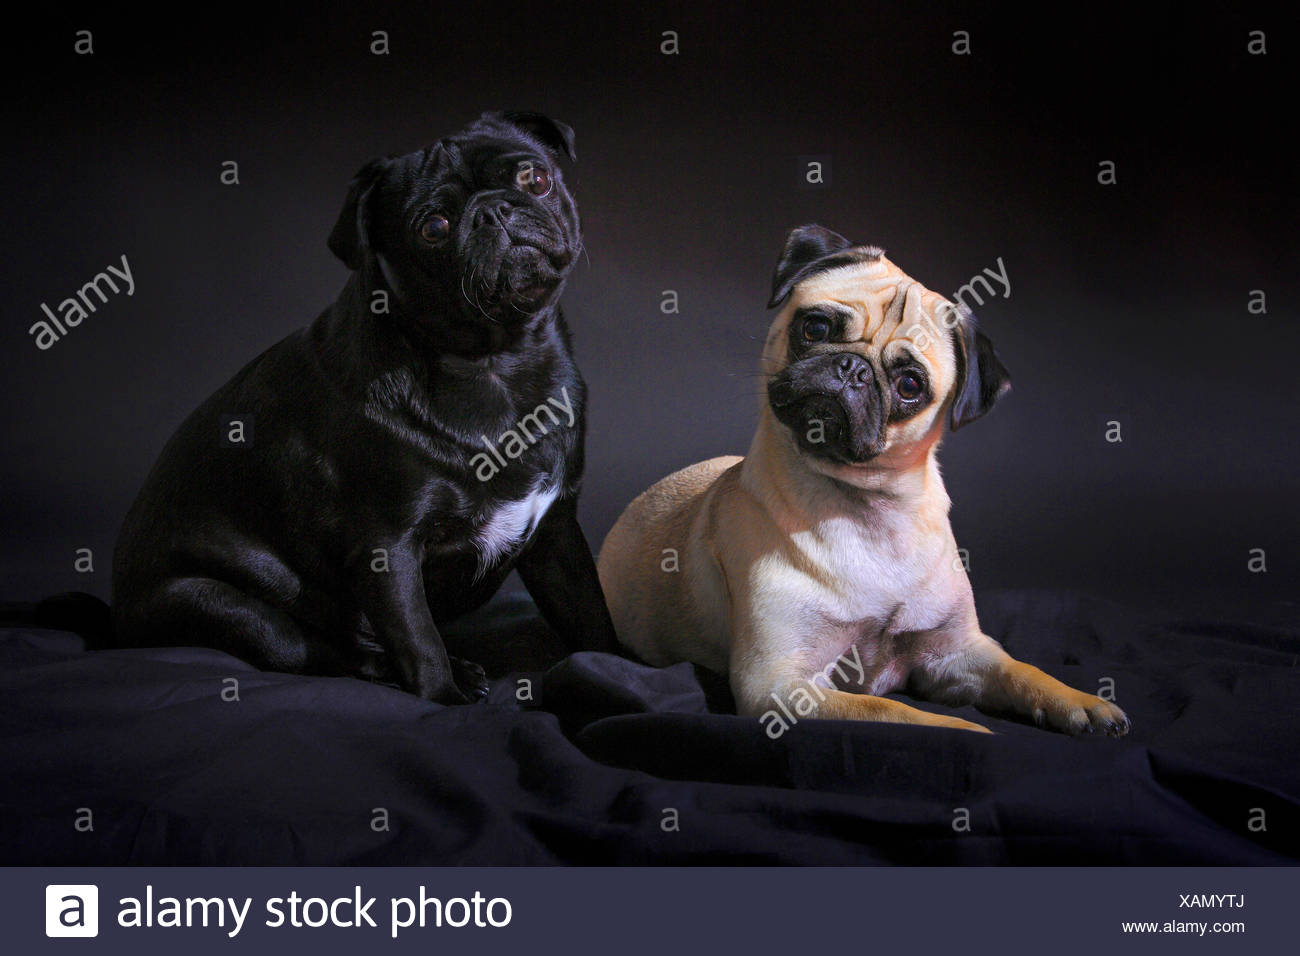 Pug (Canis lupus f. familiaris), black pug and fawn pug together on a black blanket and keeping their heads tilted - Stock Image